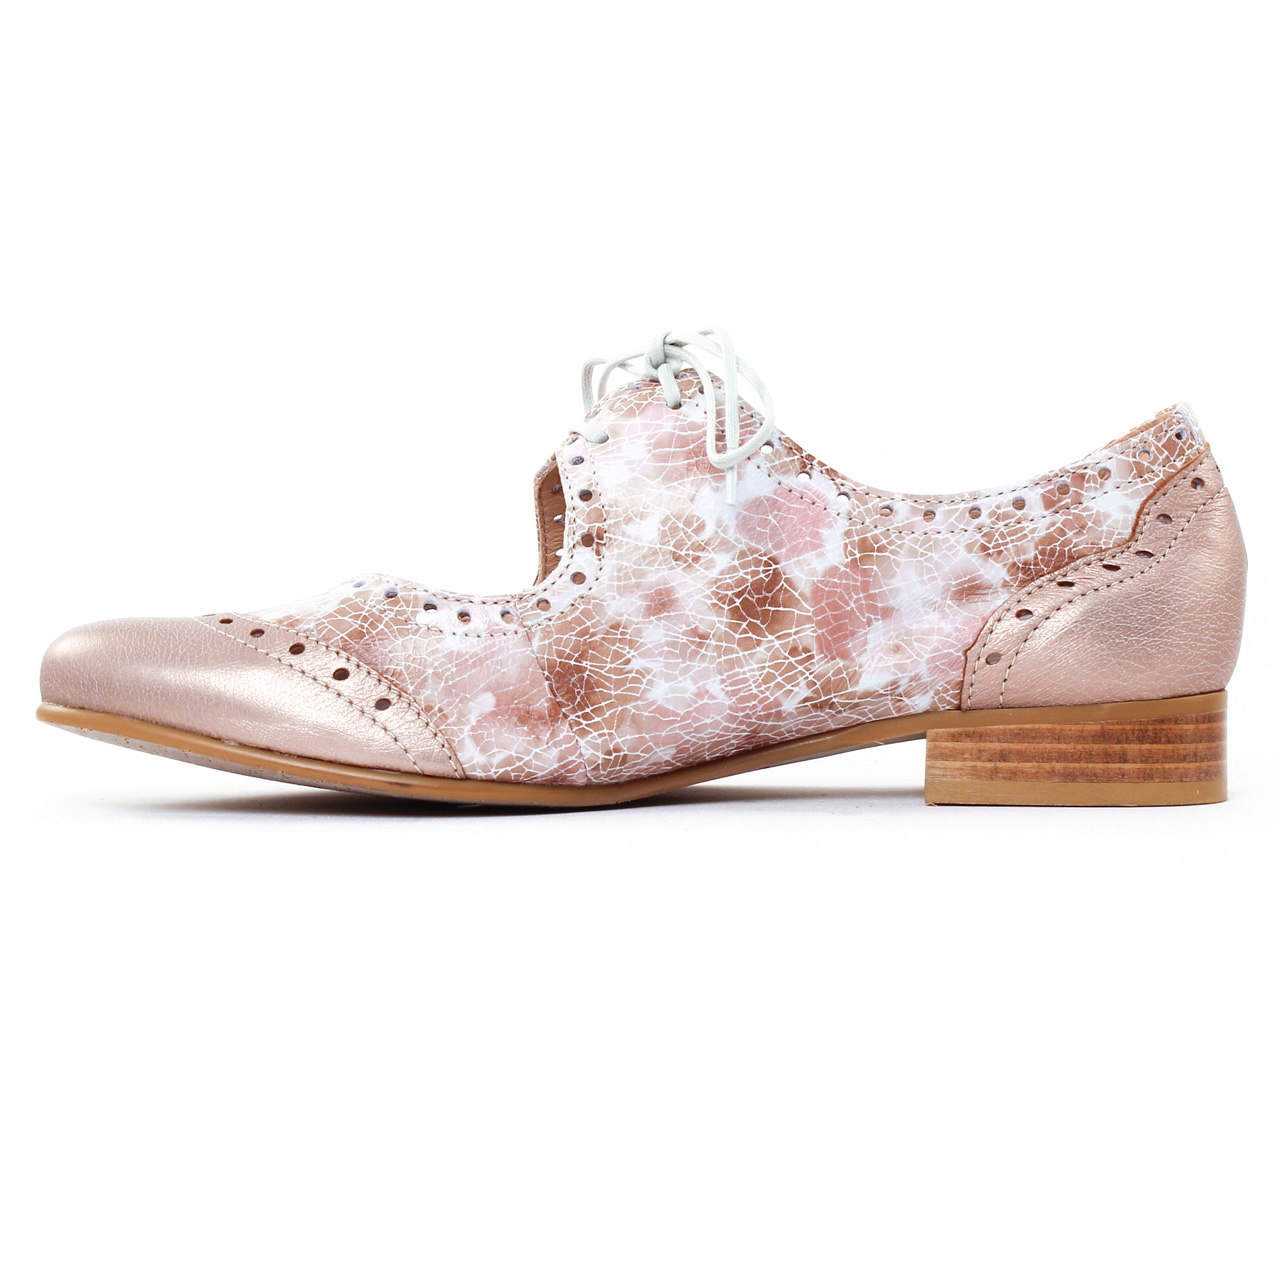 Chaussures à lacets COSTA COSTA cuir blanc 38 LDLyoH